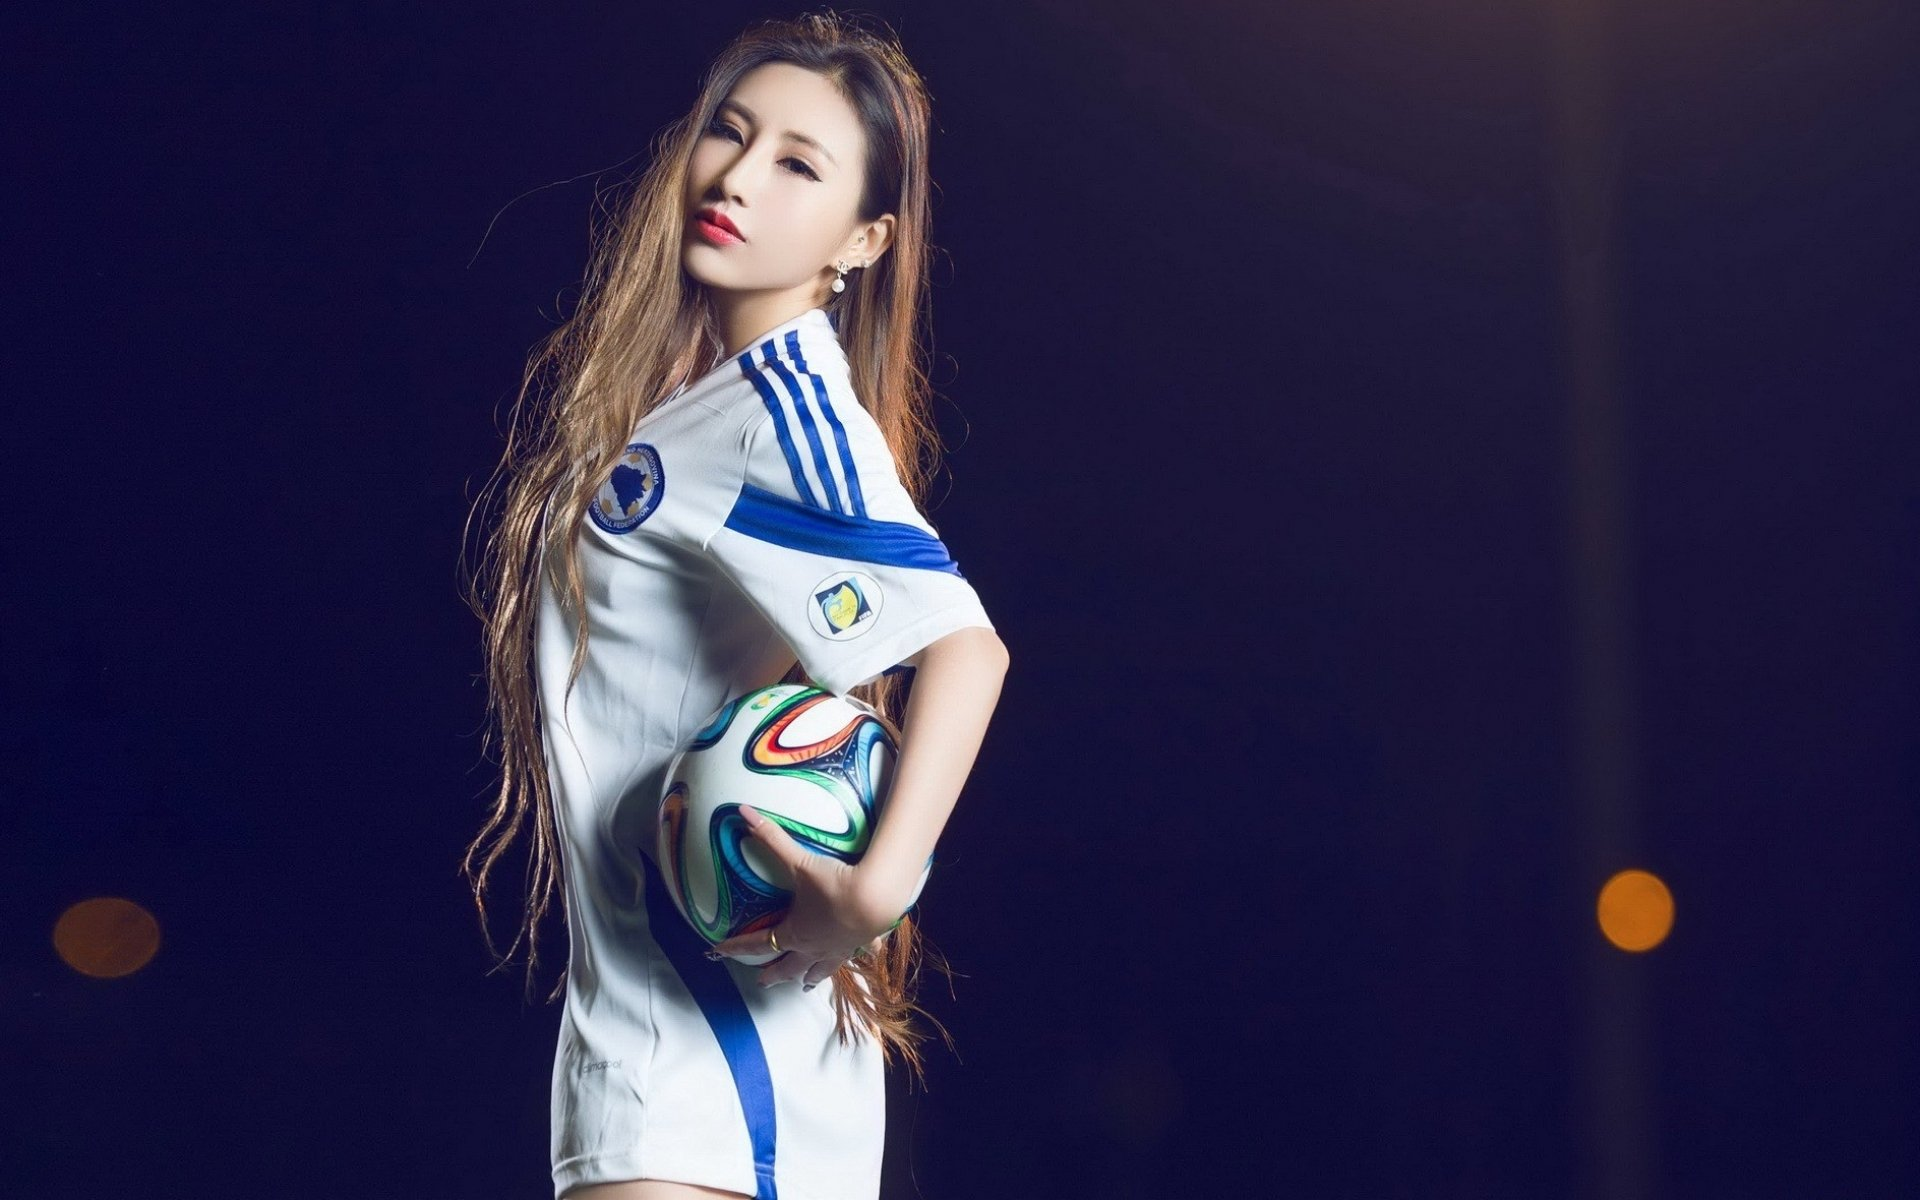 wallpapers sports japanese - photo #27